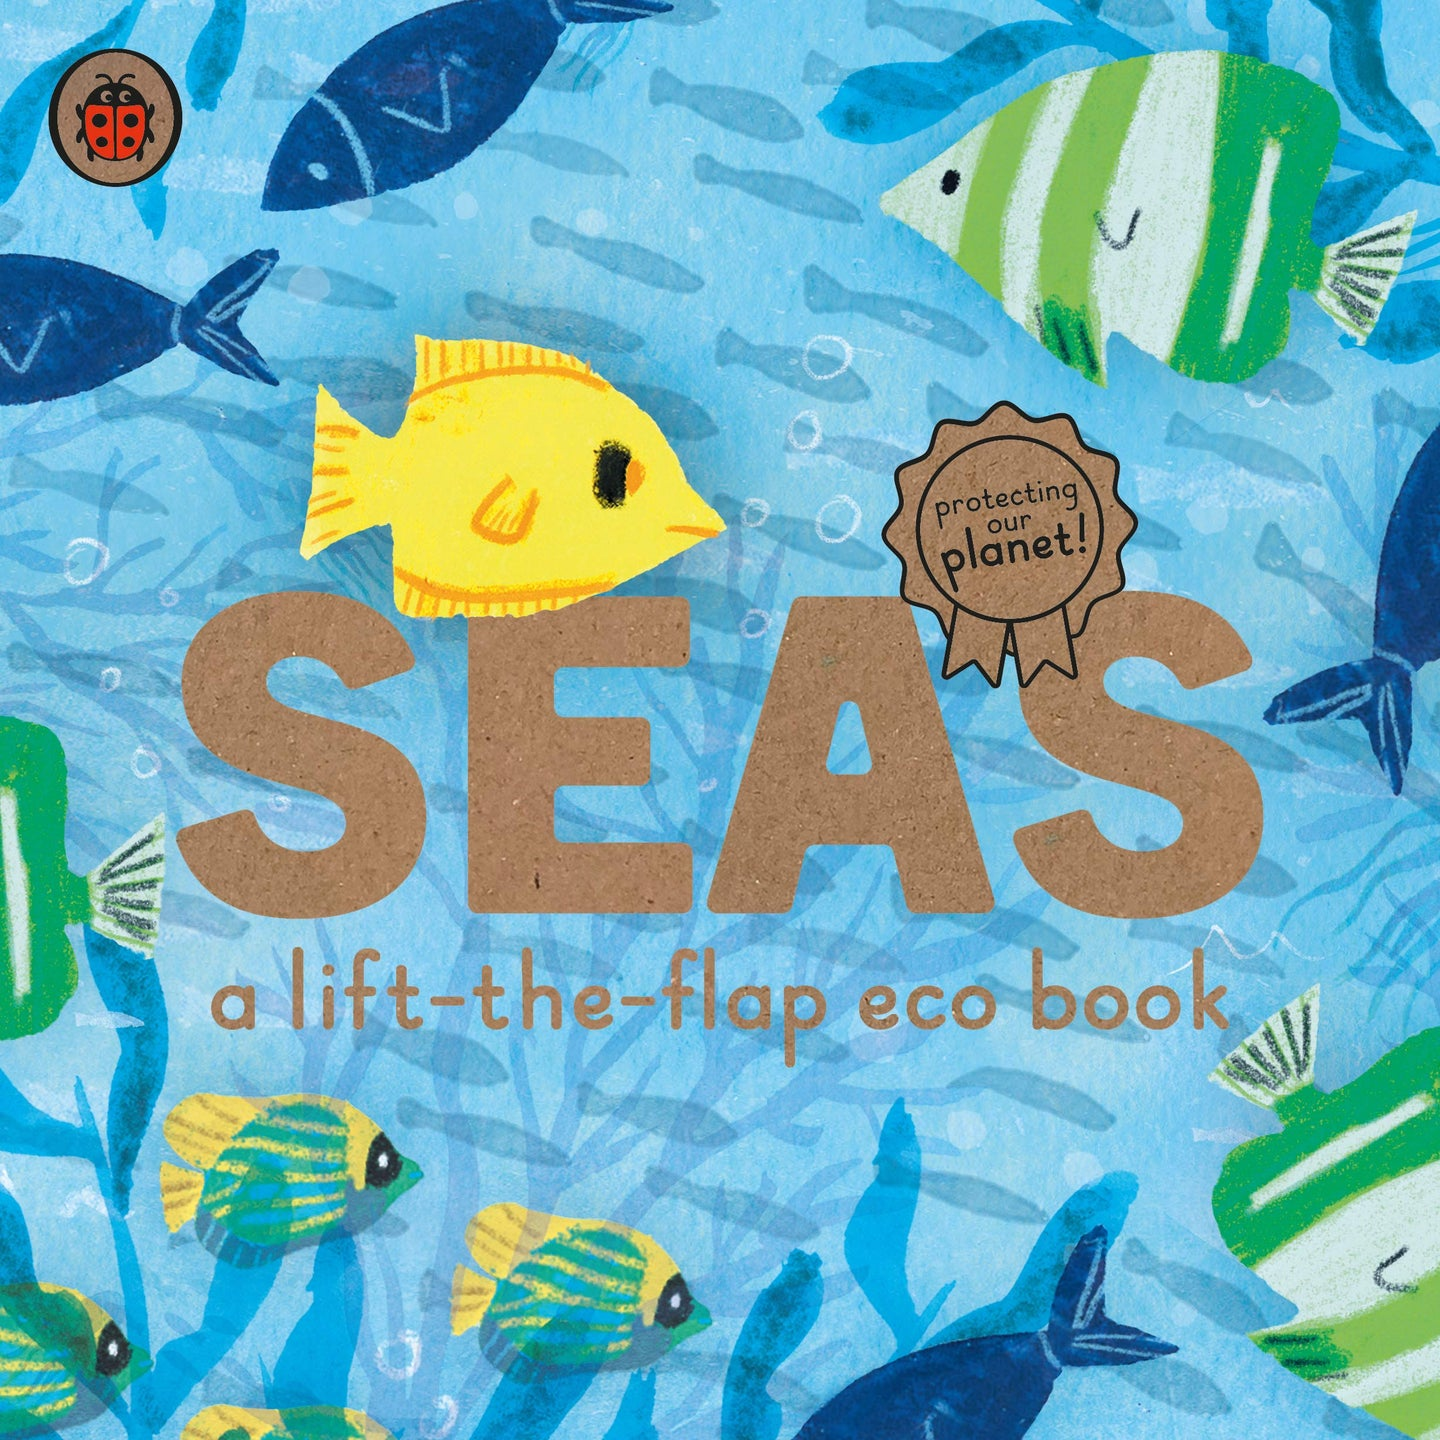 Seas: A lift-the-flap eco book (Board Book)